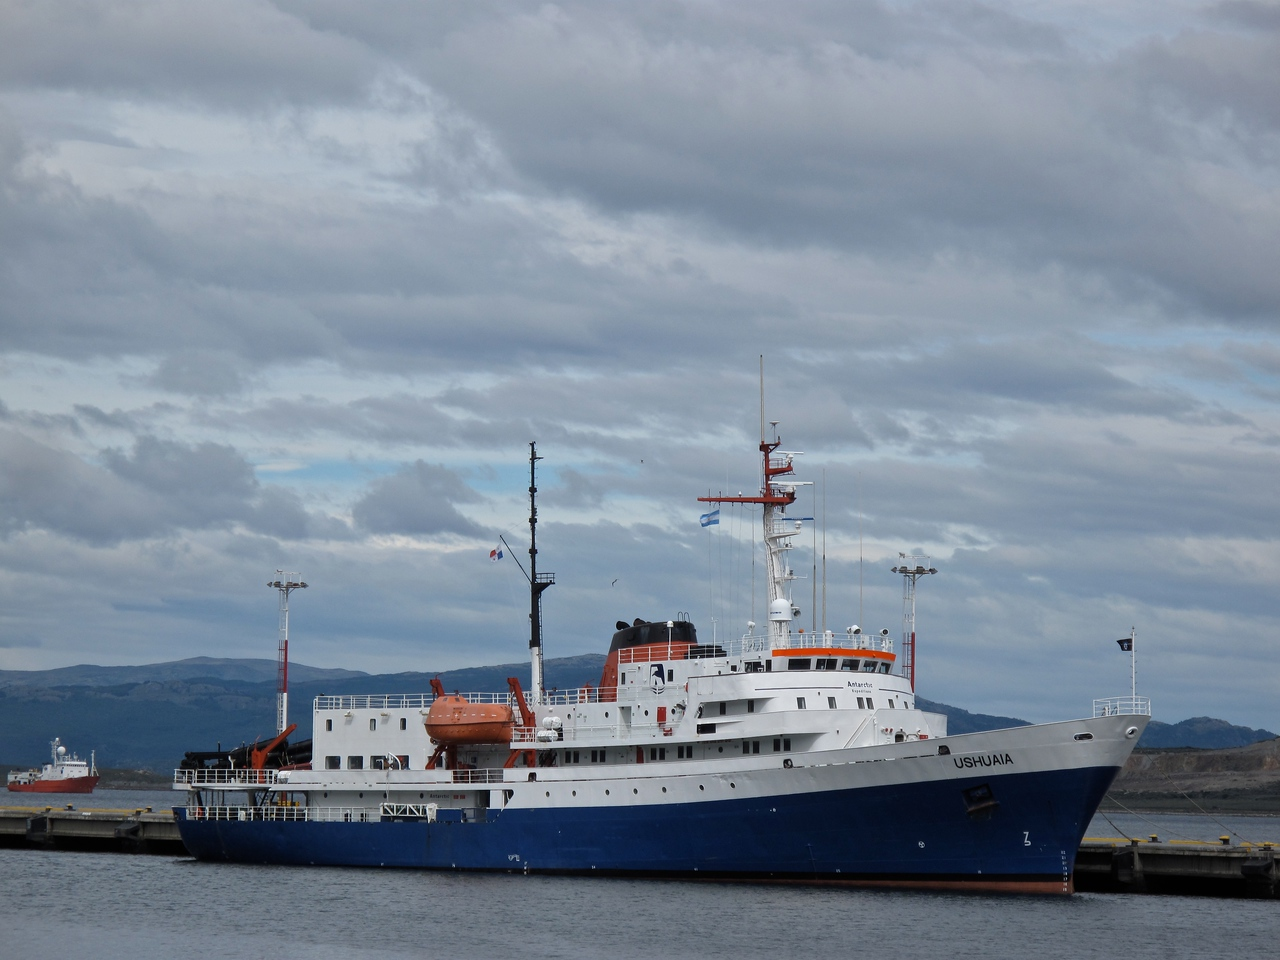 This is the M/V Ushuaia our small expedition boat that we took to Antarctica.